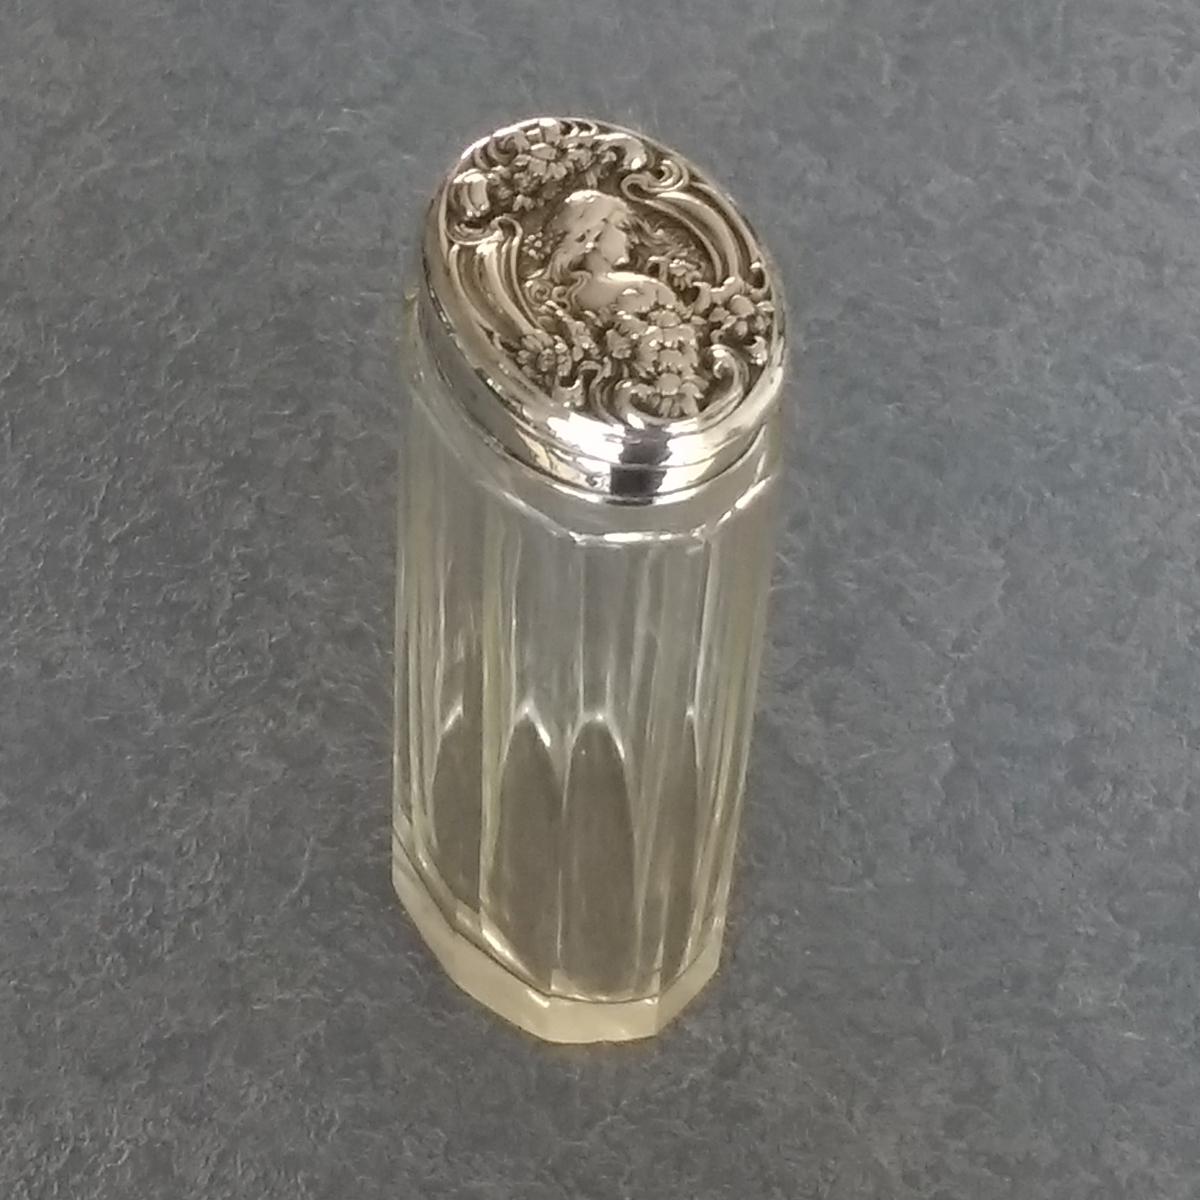 sterling silver lid was restored and the crushed side was lifted back into place